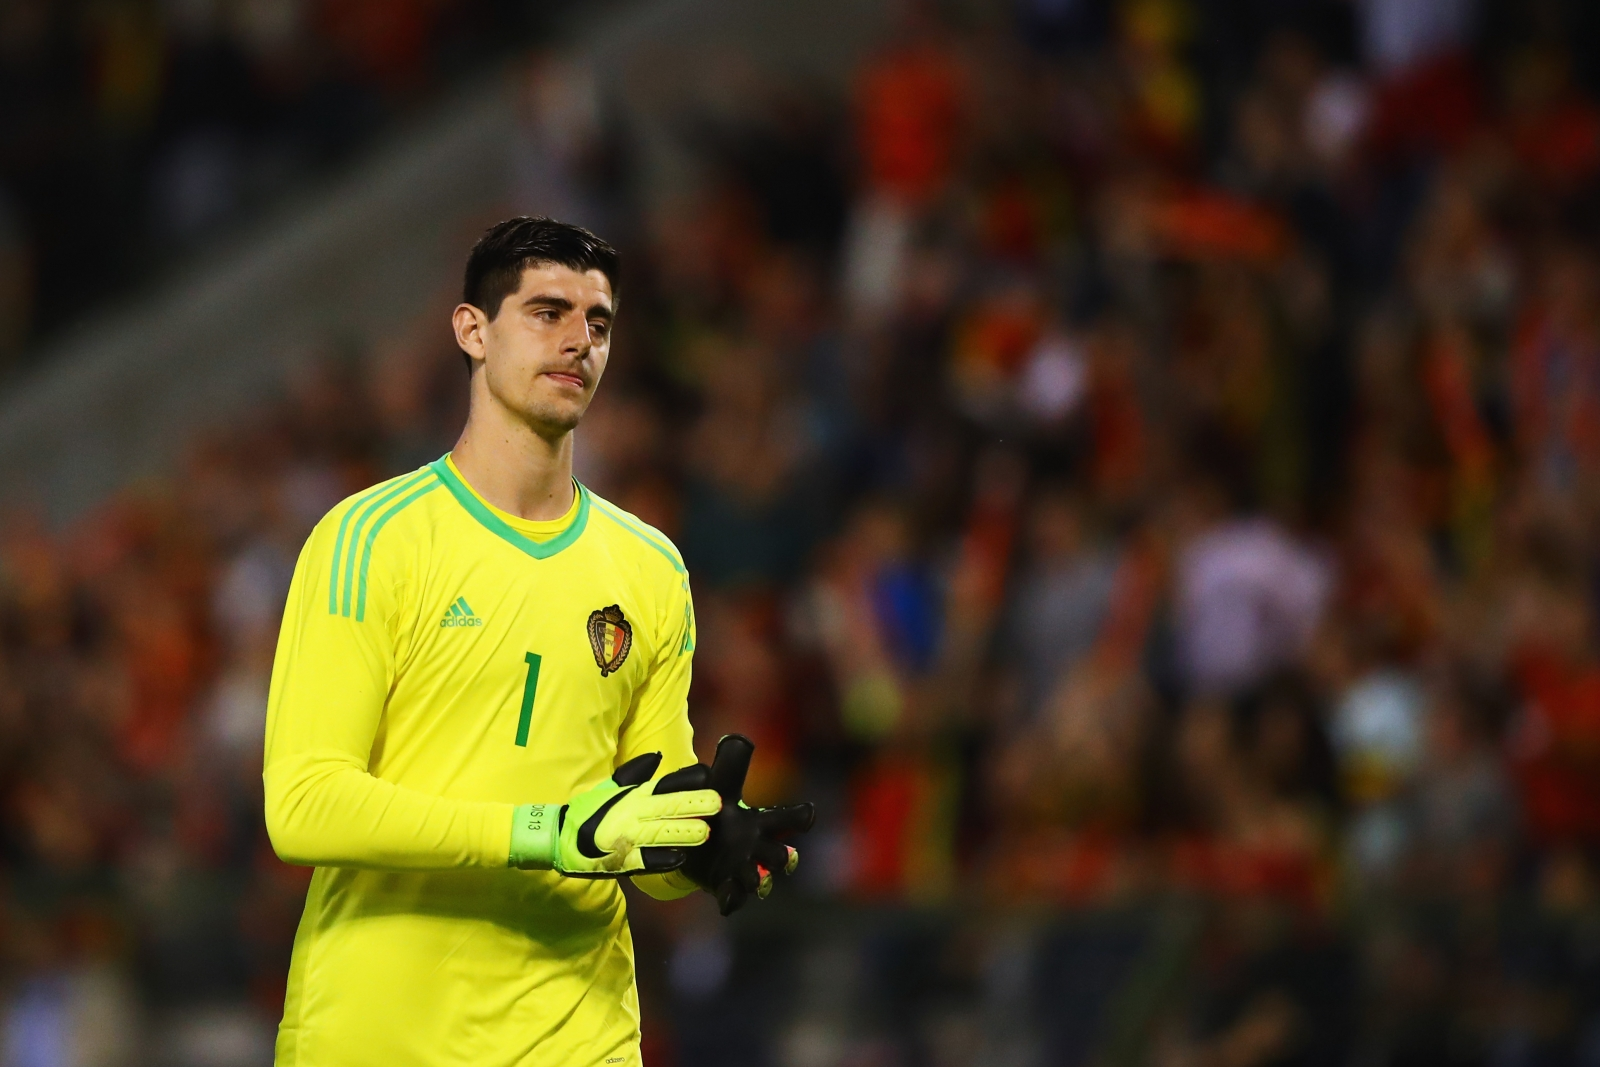 Real Madrid ´meet regularly´ with Chelsea goalkeeper Courtois´ agent